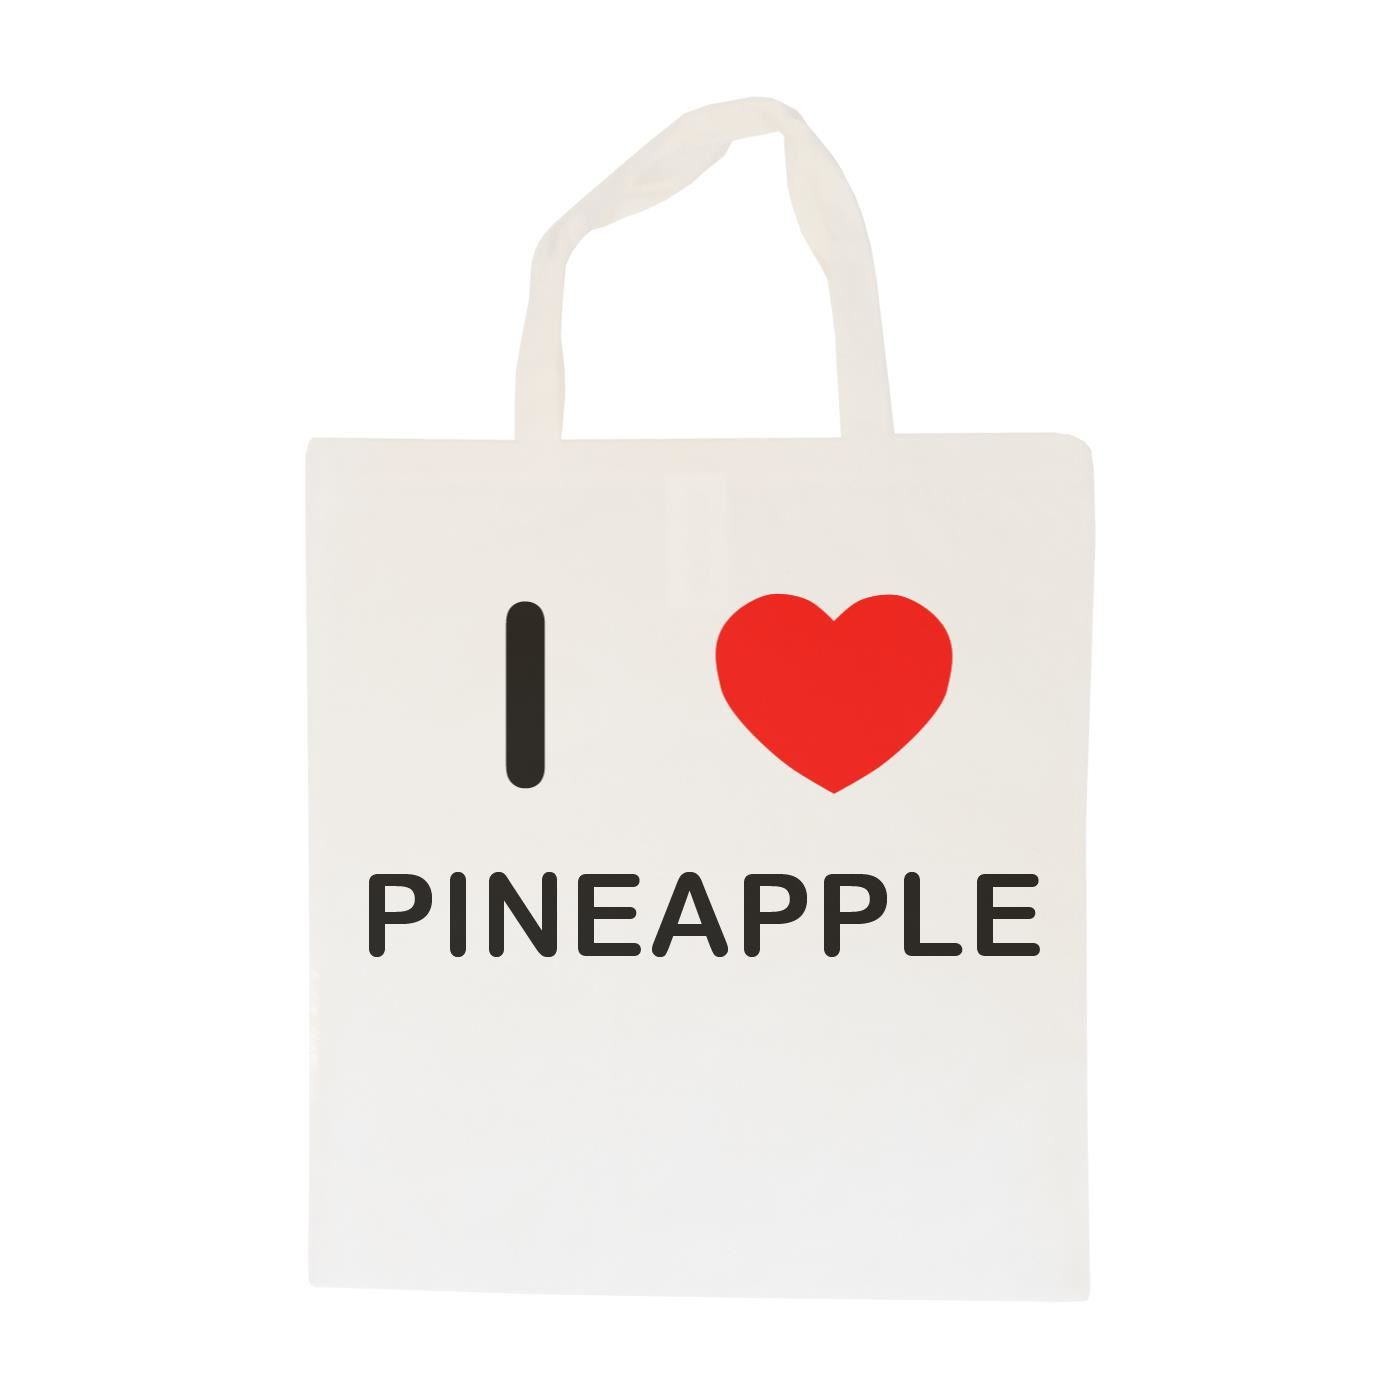 I Love Pineapple - Cotton Bag | Size choice Tote, Shopper or Sling